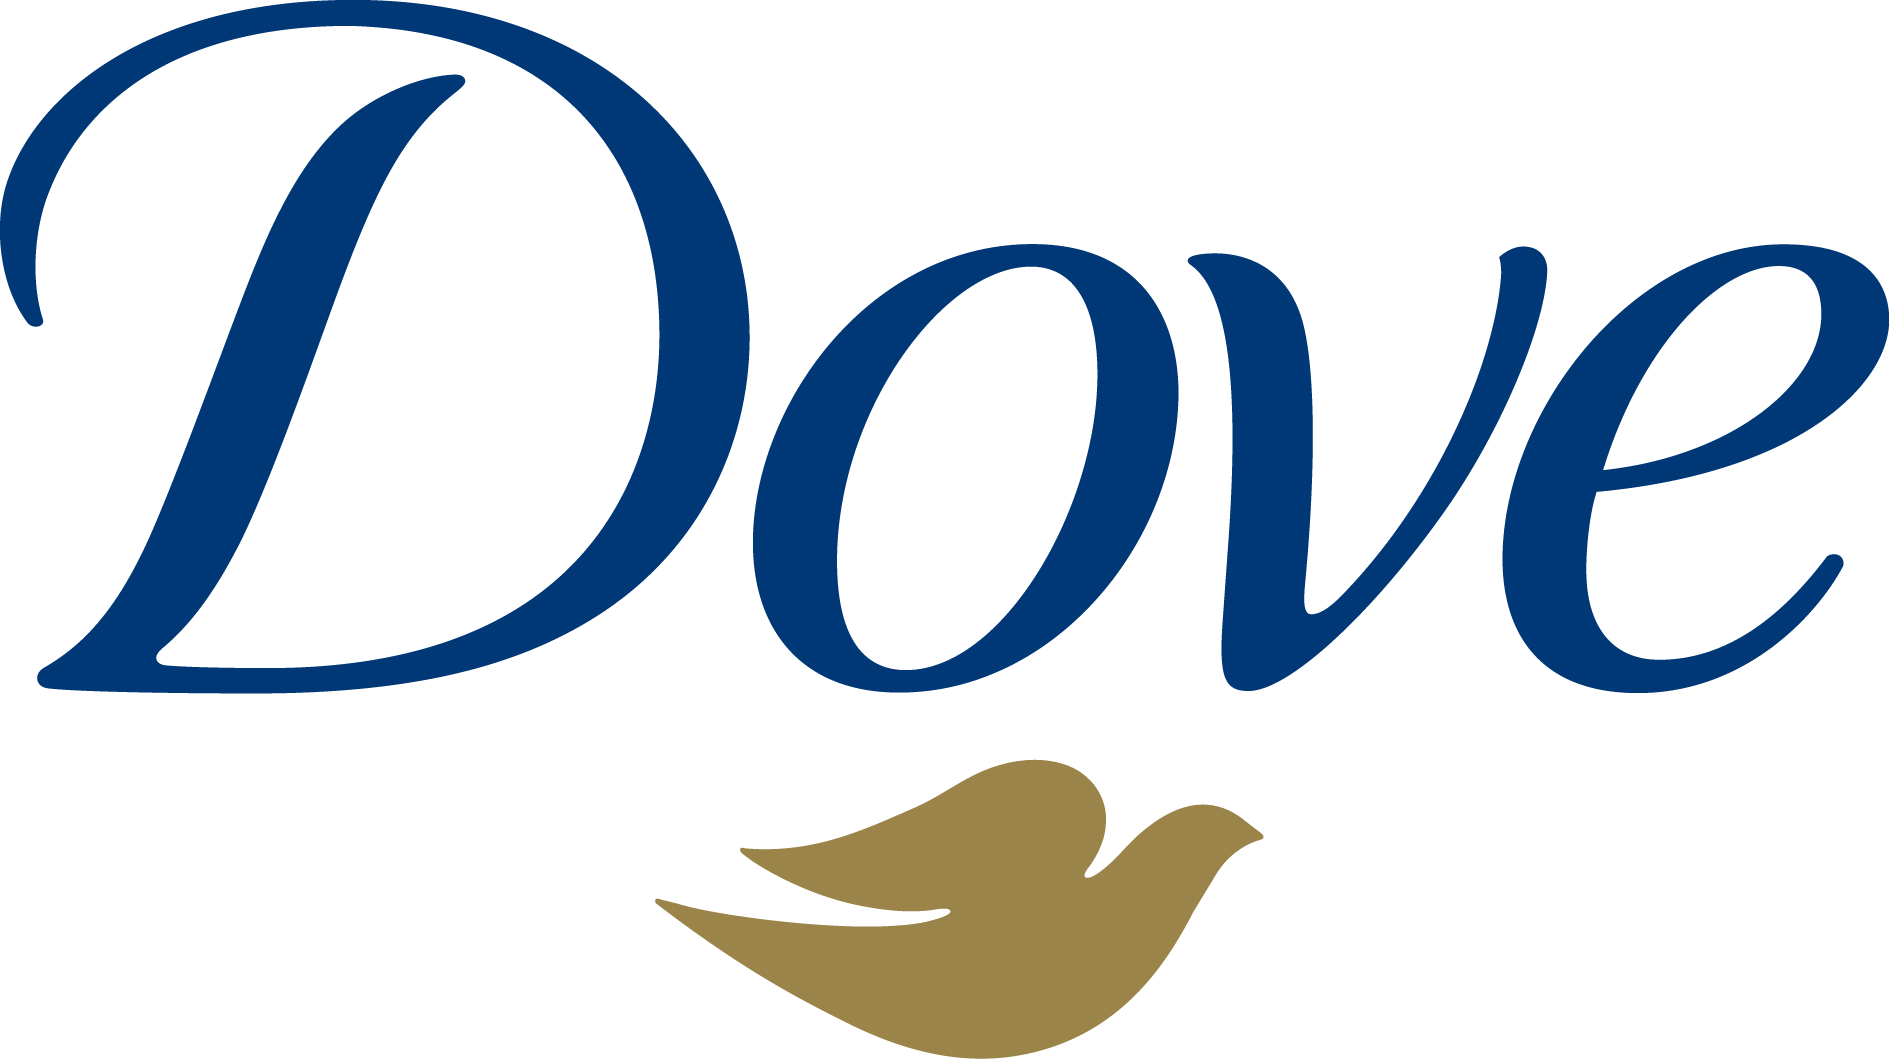 Dove Logo Wallpaper